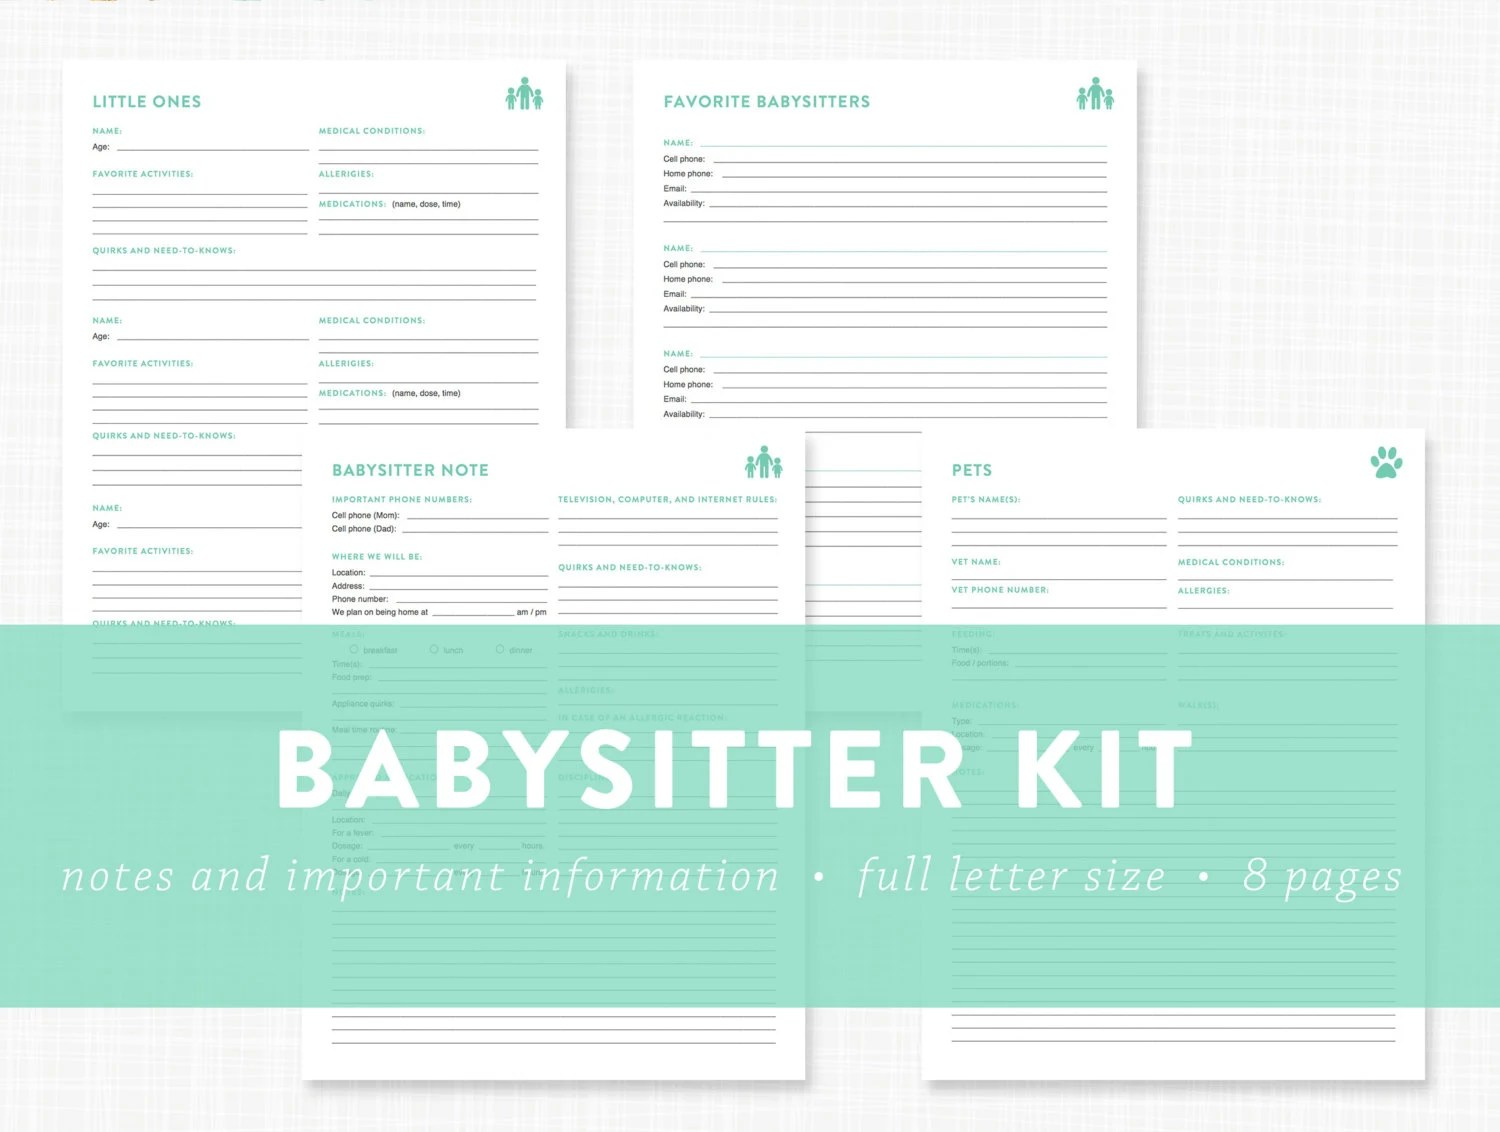 Editable Babysitter Kit Information By Lauradraytoncreative